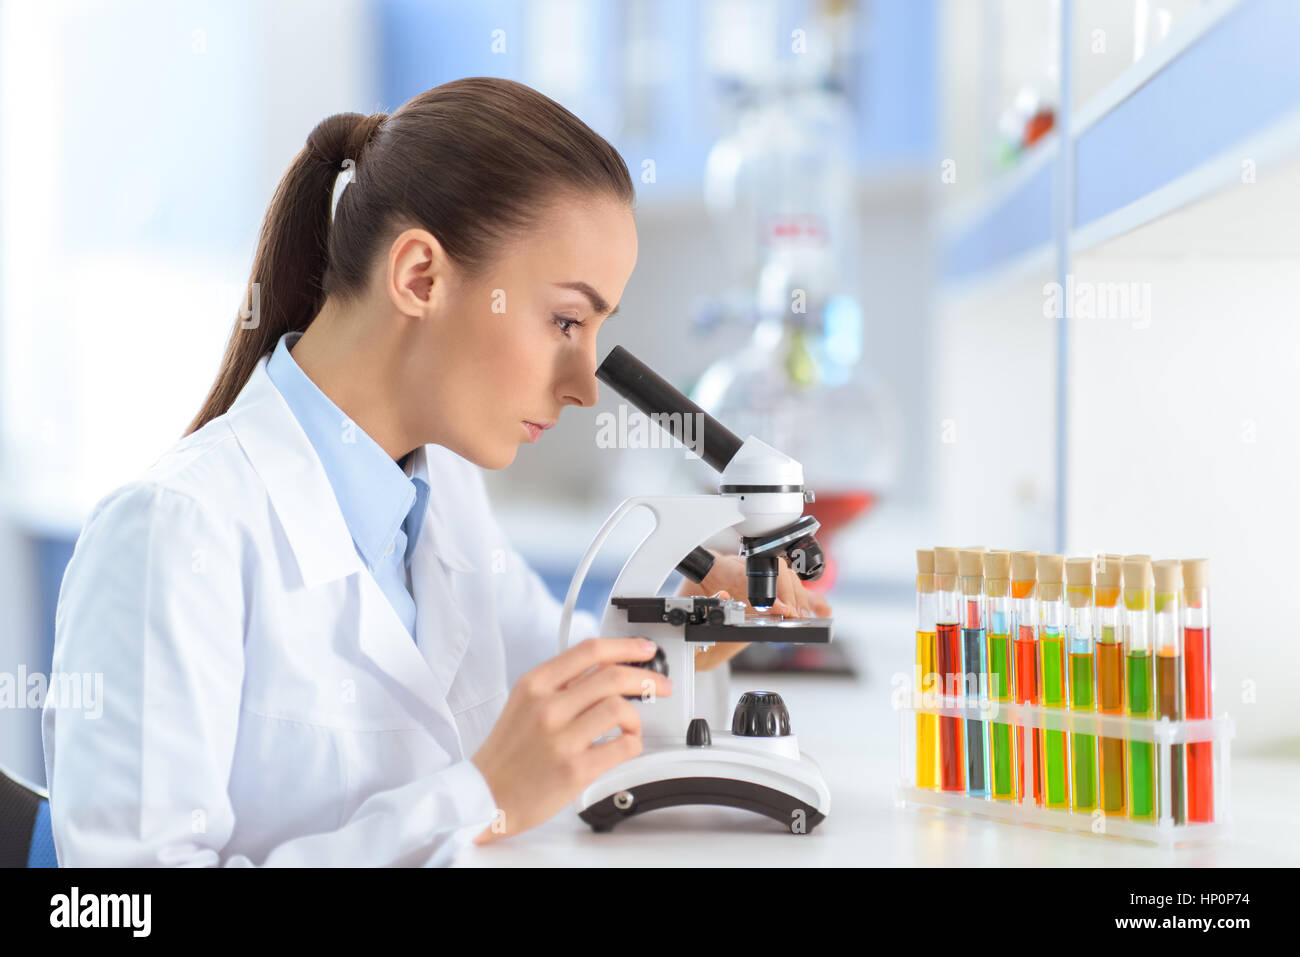 woman scientist working with microscope in laboratory - Stock Image